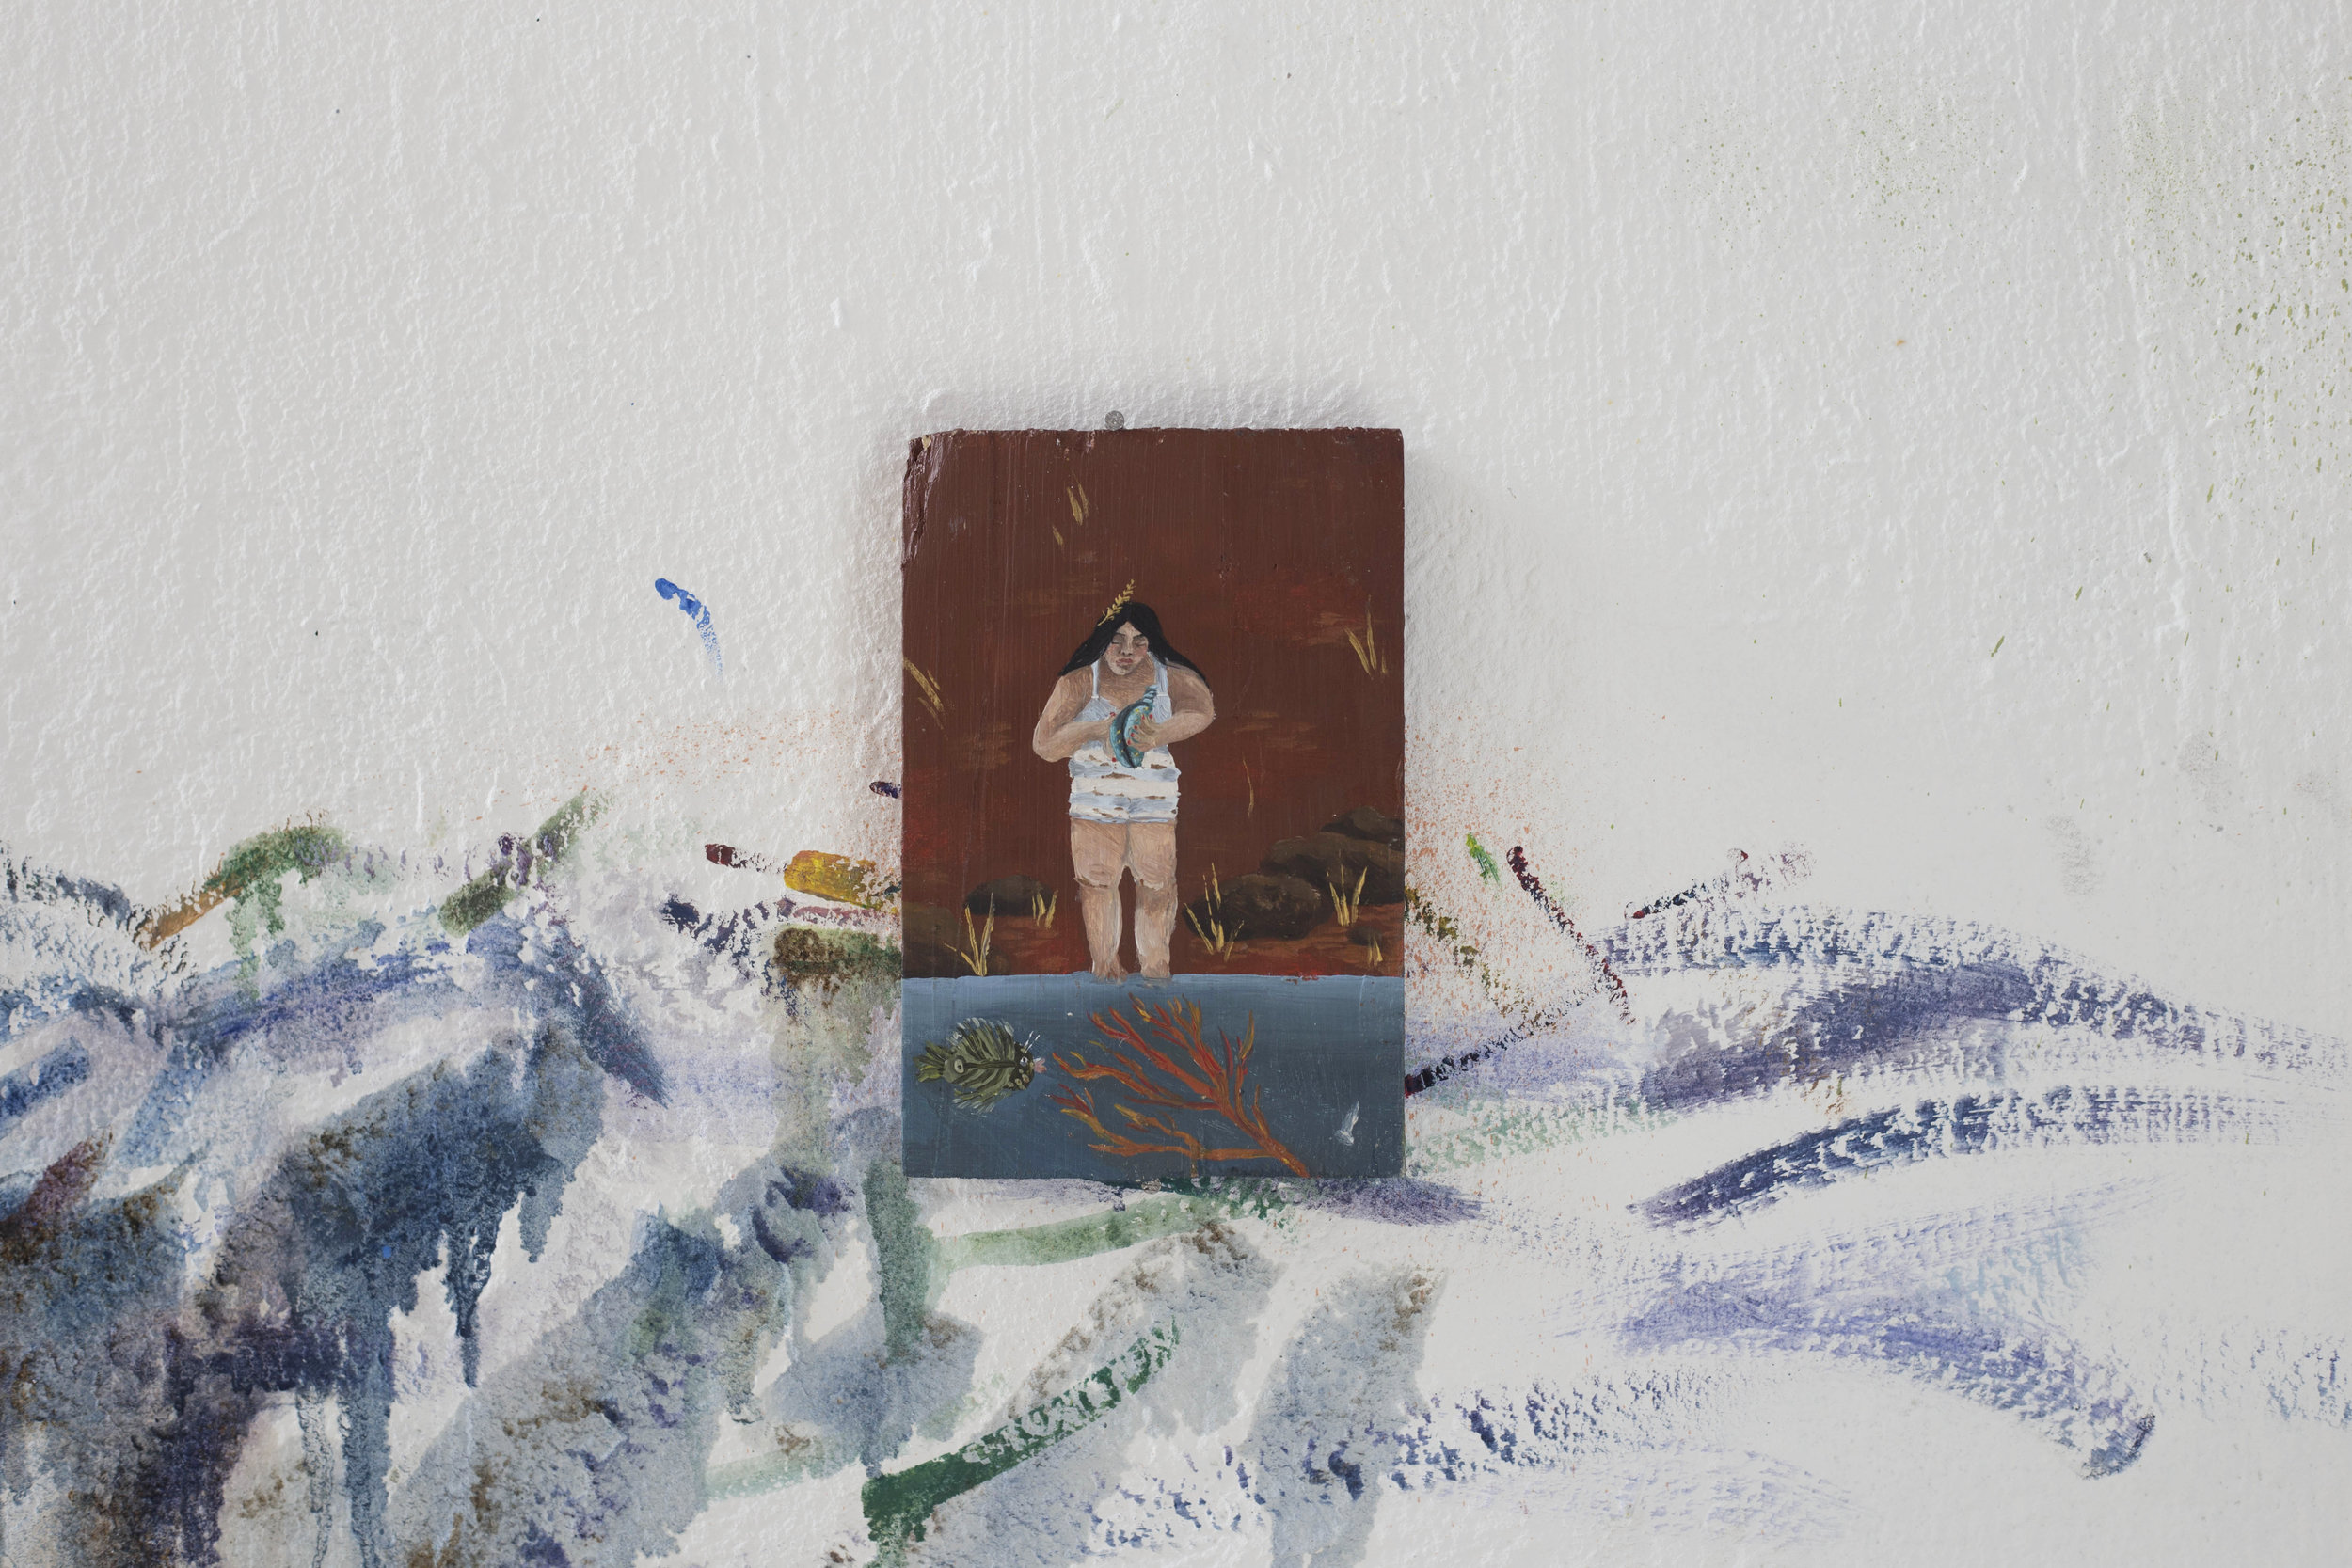 Marguerite Piard, Plage rouge, 2018, Acrylic and oil on wood, 15x9.9cm signed on the back. Certificate of authenticity.   EUR 200